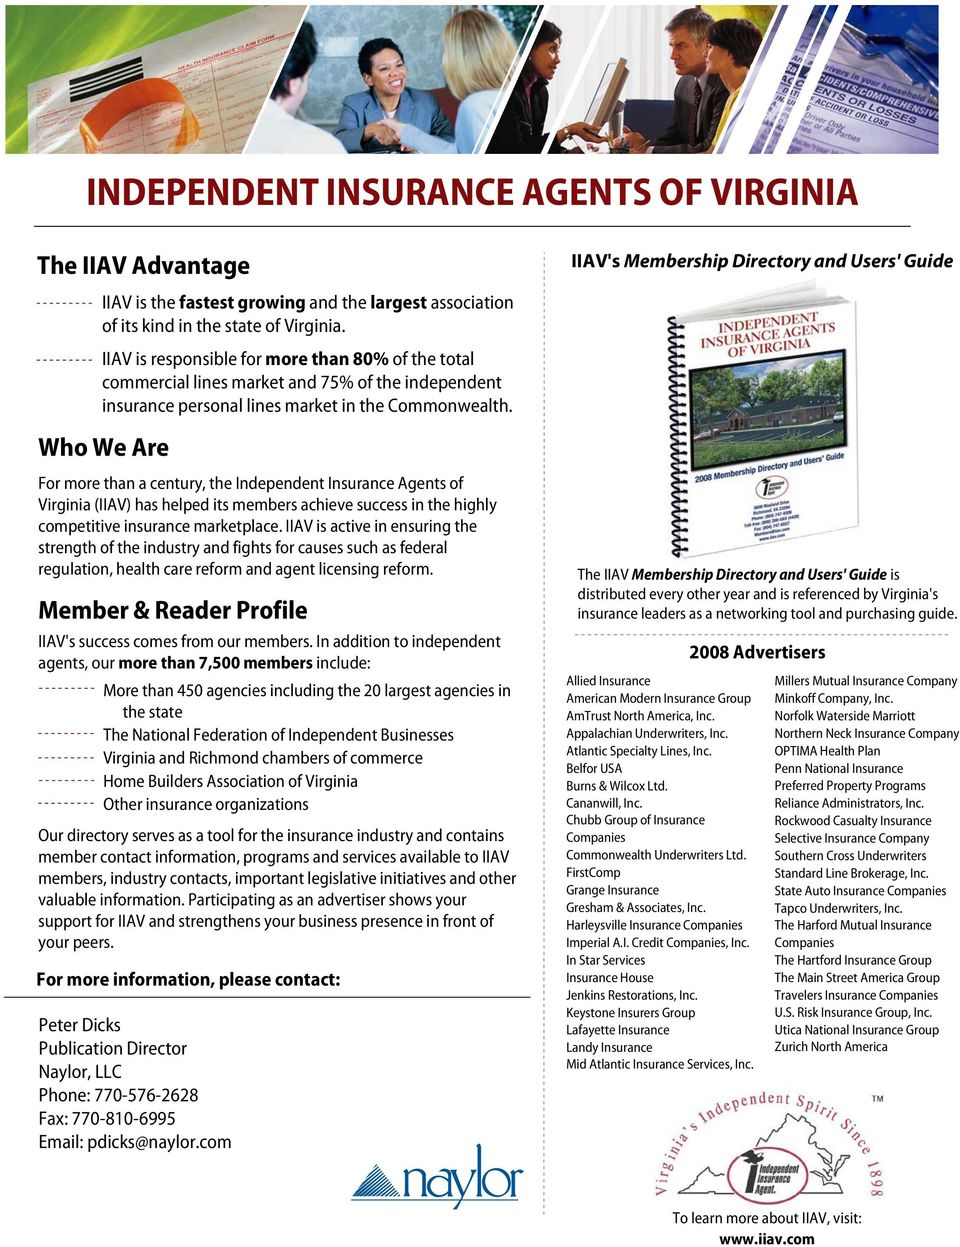 Who We Are For more than a century, the Independent Insurance Agents of Virginia (IIAV) has helped its members achieve success in the highly competitive insurance marketplace.